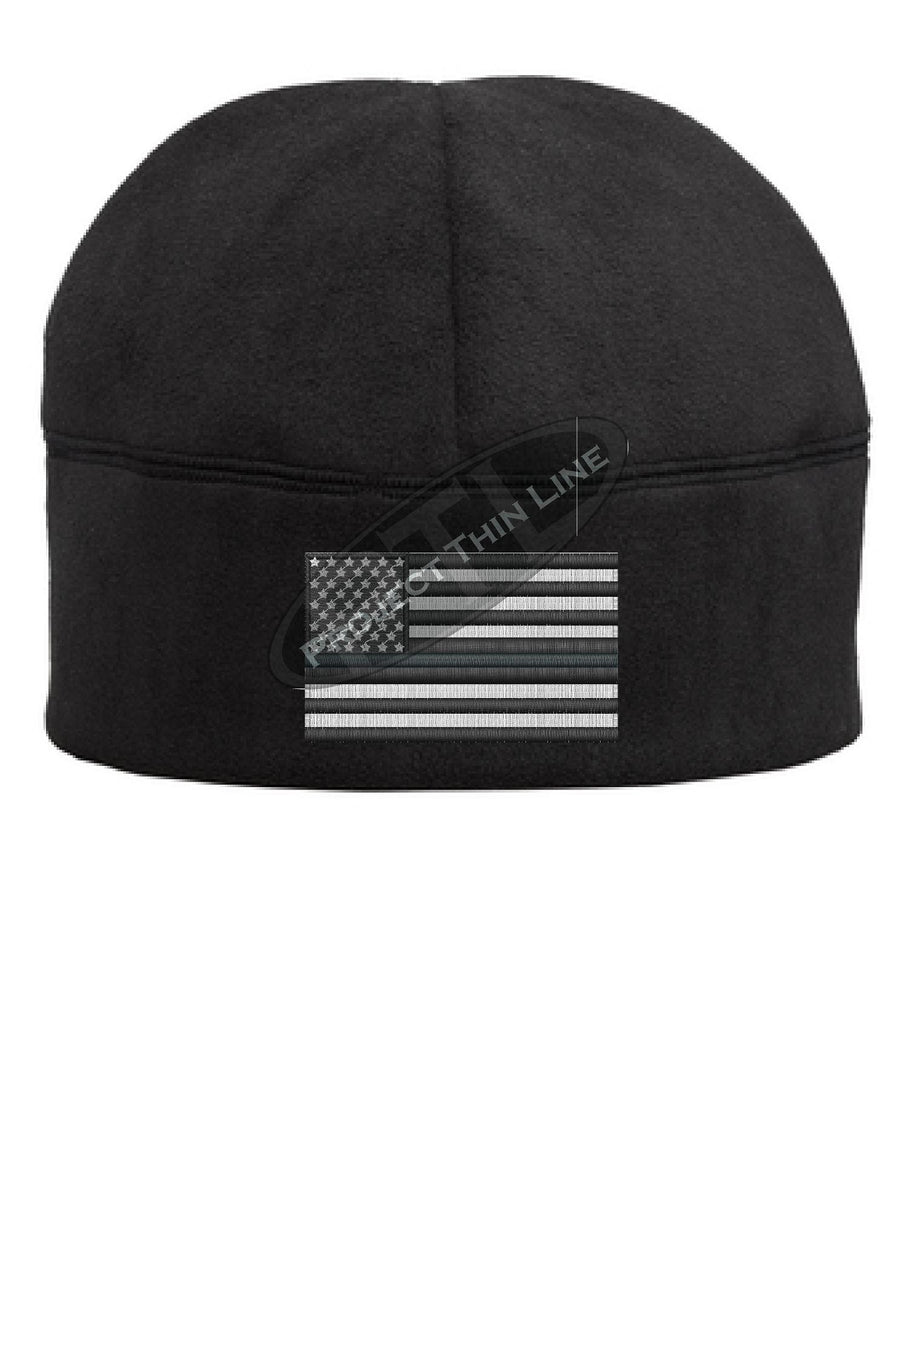 Thin GOLD Line Flag Fleece Beanie